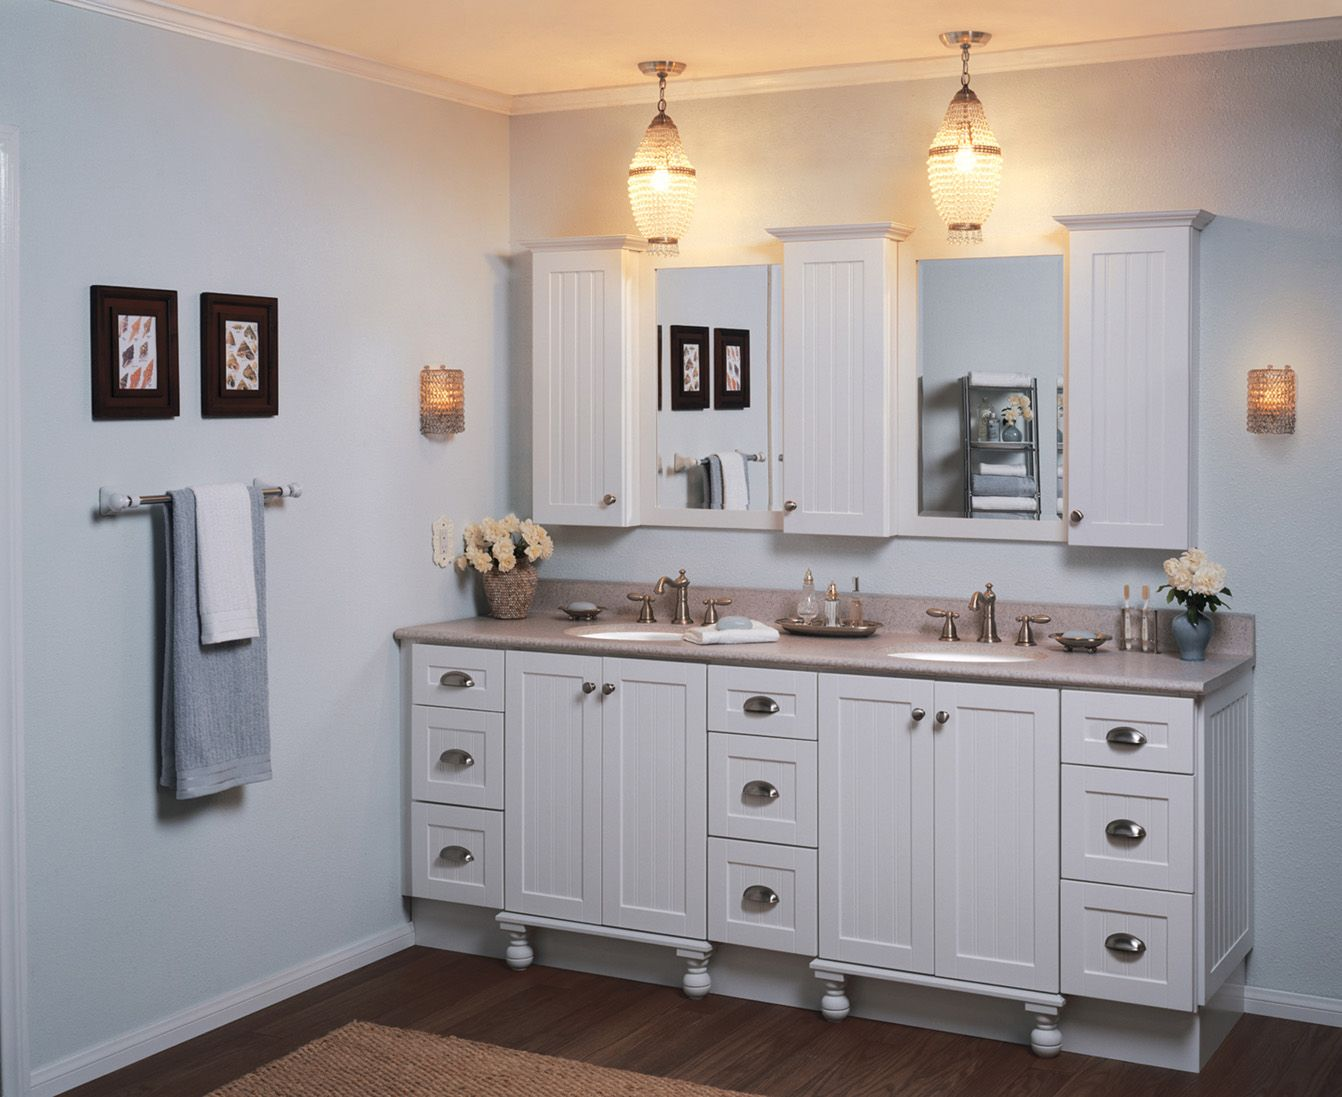 Bathroom Vanity Lights Over Medicine Cabinet bathroom mirrors over vanity | ideas using mirrors, wall hutches